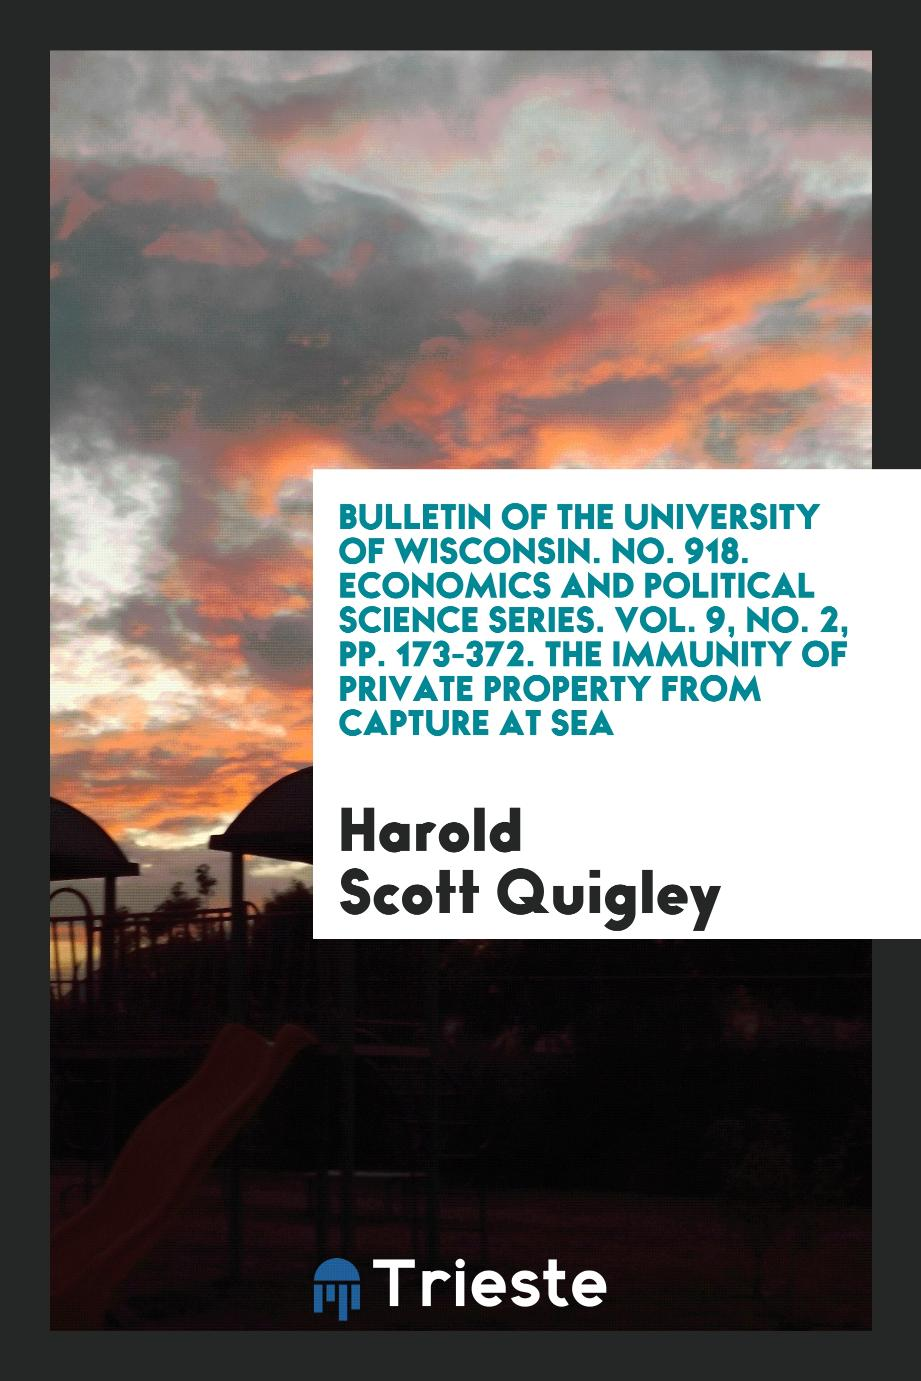 Bulletin of the University of Wisconsin. No. 918. Economics and Political Science Series. Vol. 9, No. 2, pp. 173-372. The Immunity of Private Property from Capture at Sea